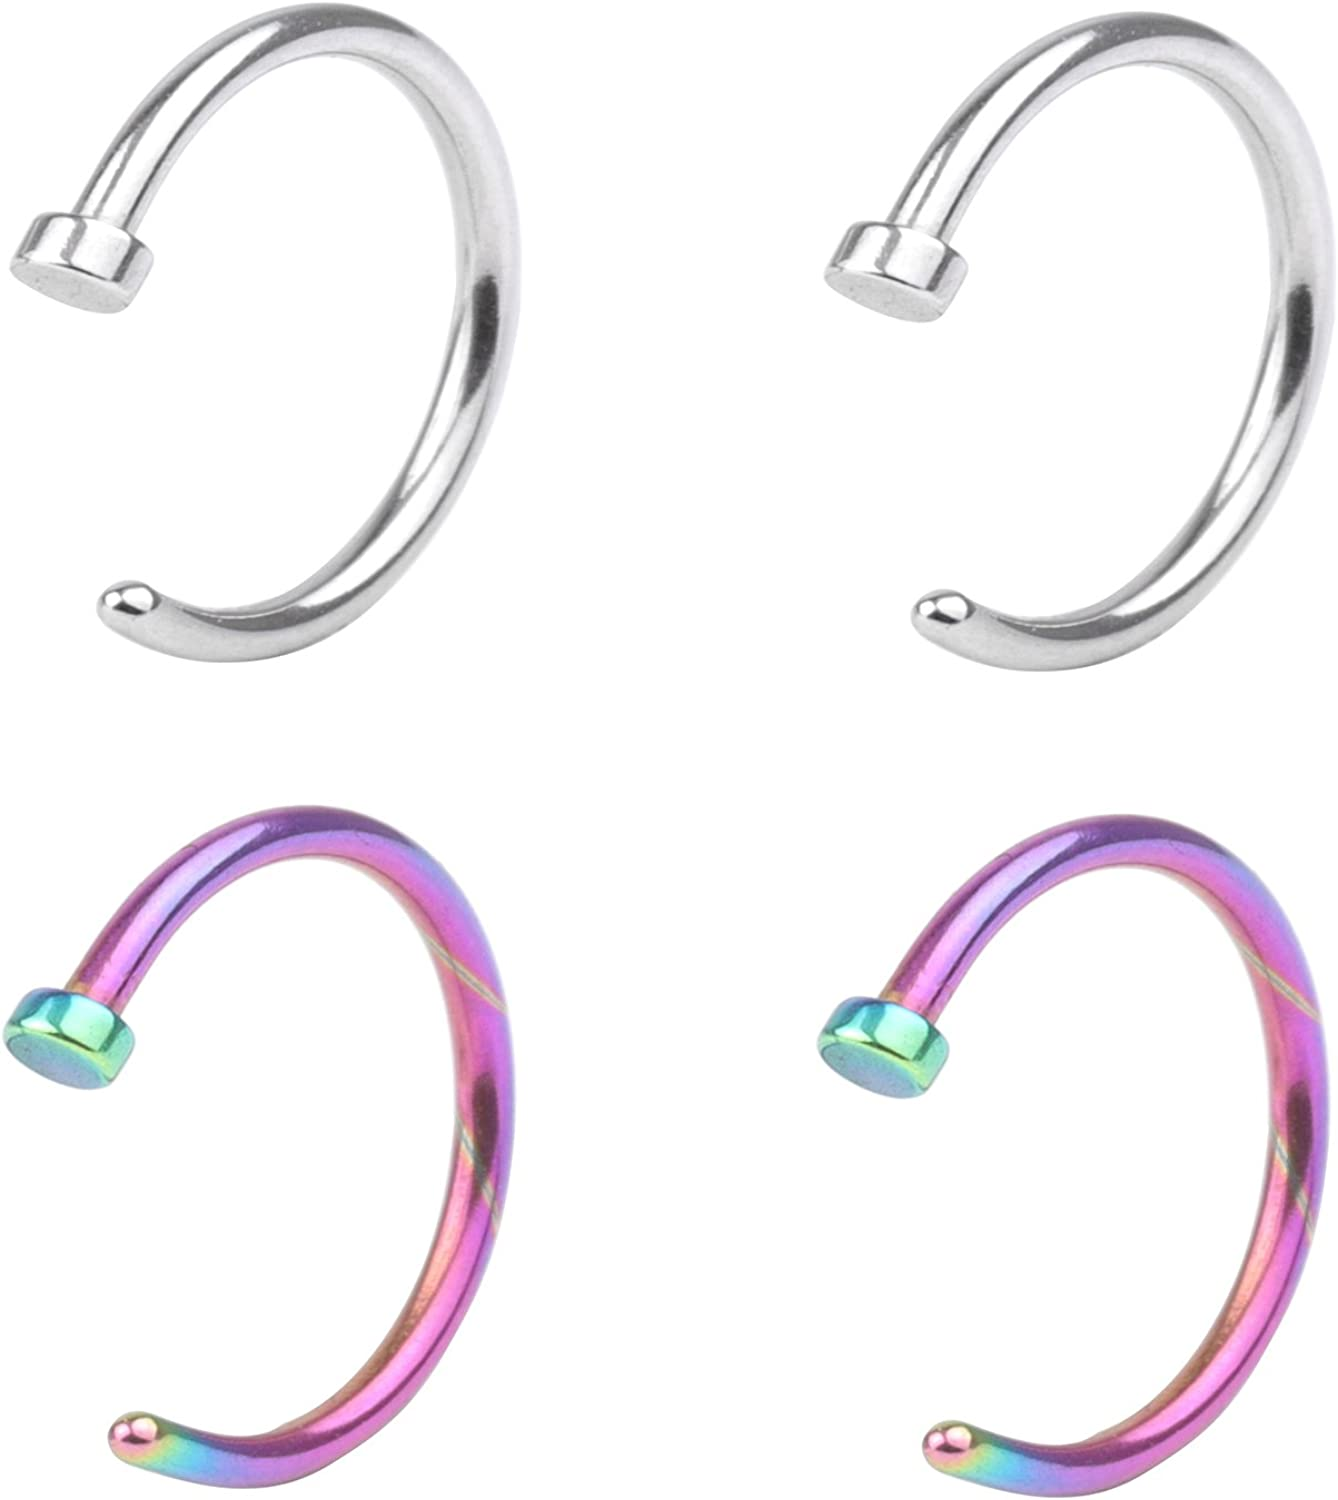 Surgical Stainless Unisex 18G Nose Rings Hoop Nose Piercing Body Jewelry 10mm 4-5pcs